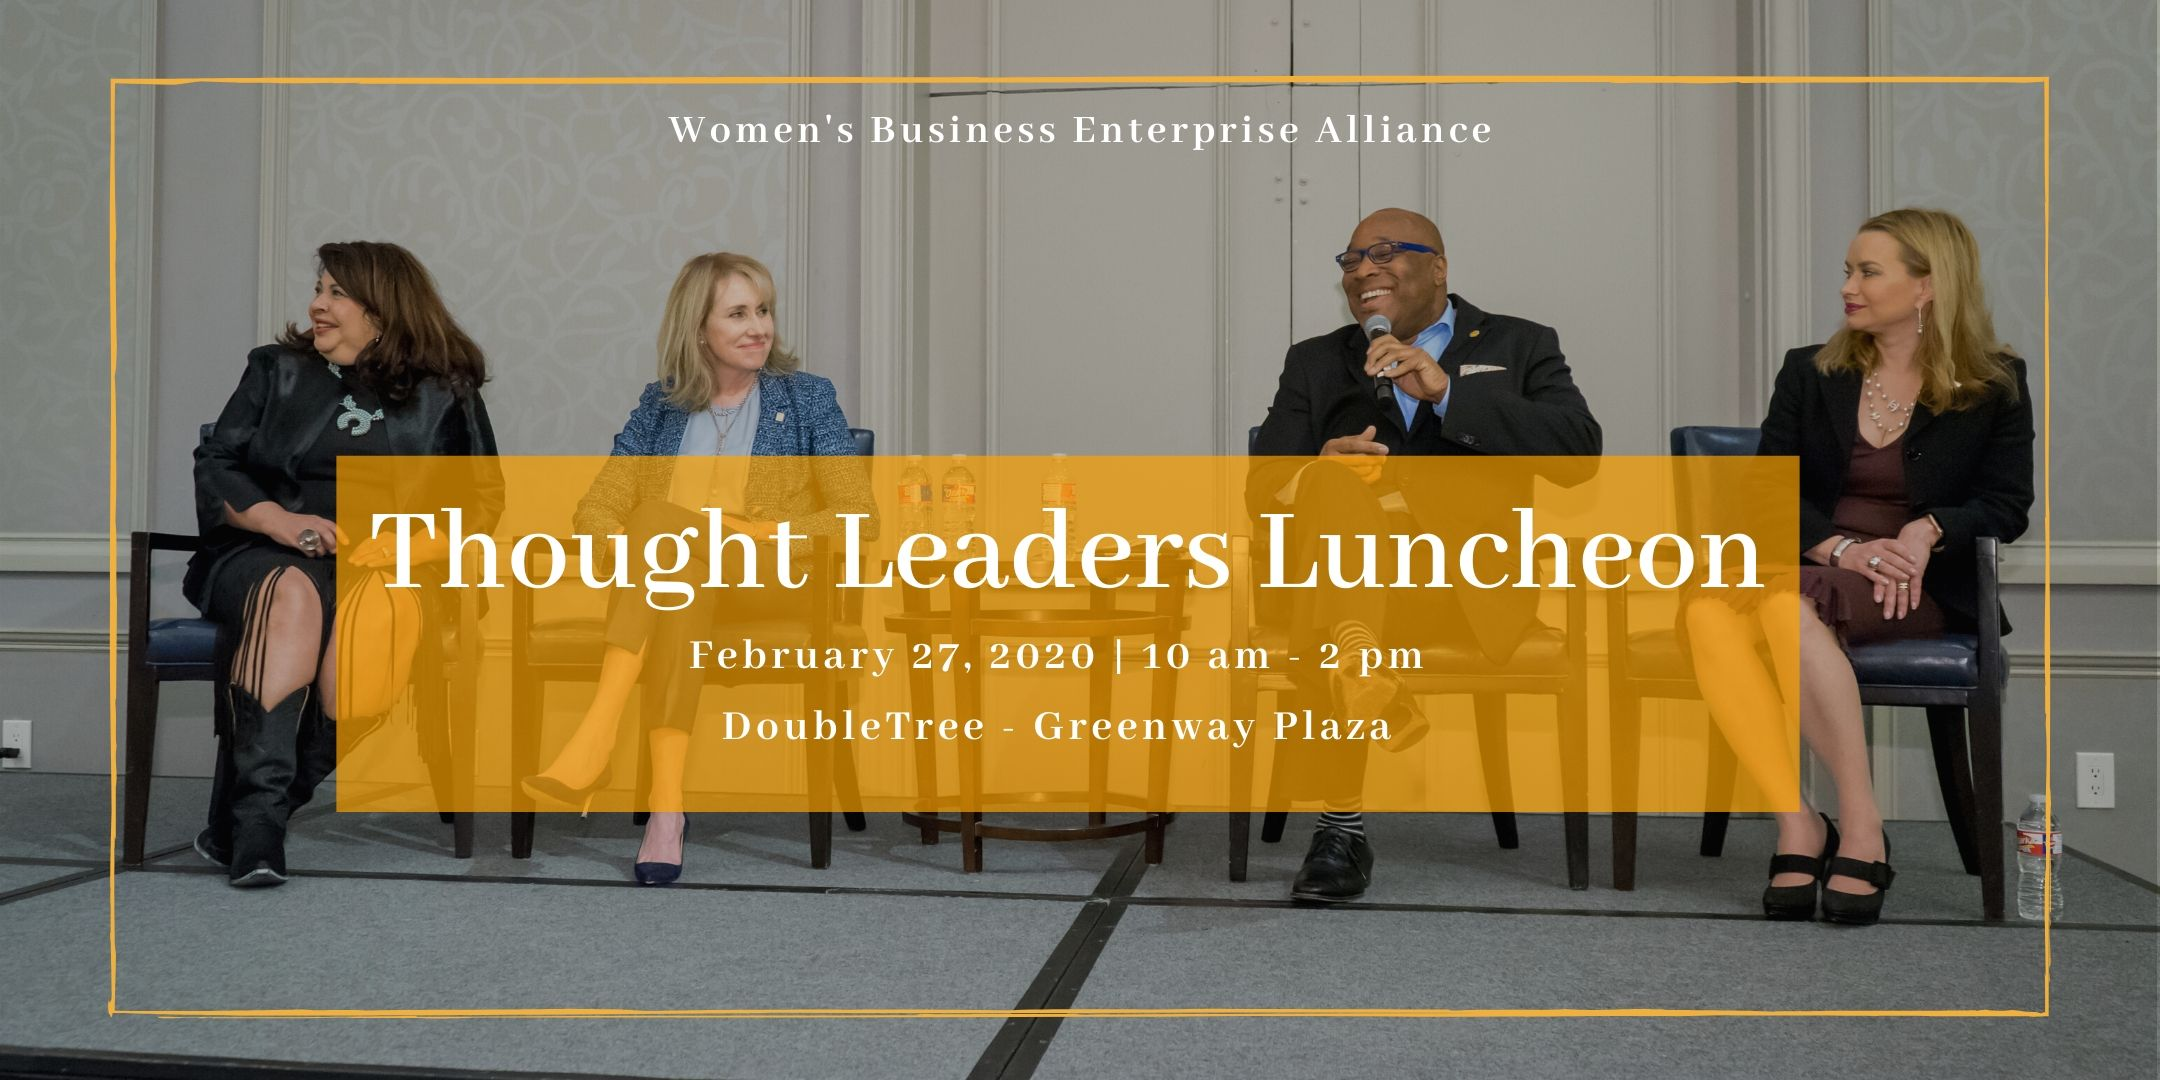 Thought Leaders Luncheon